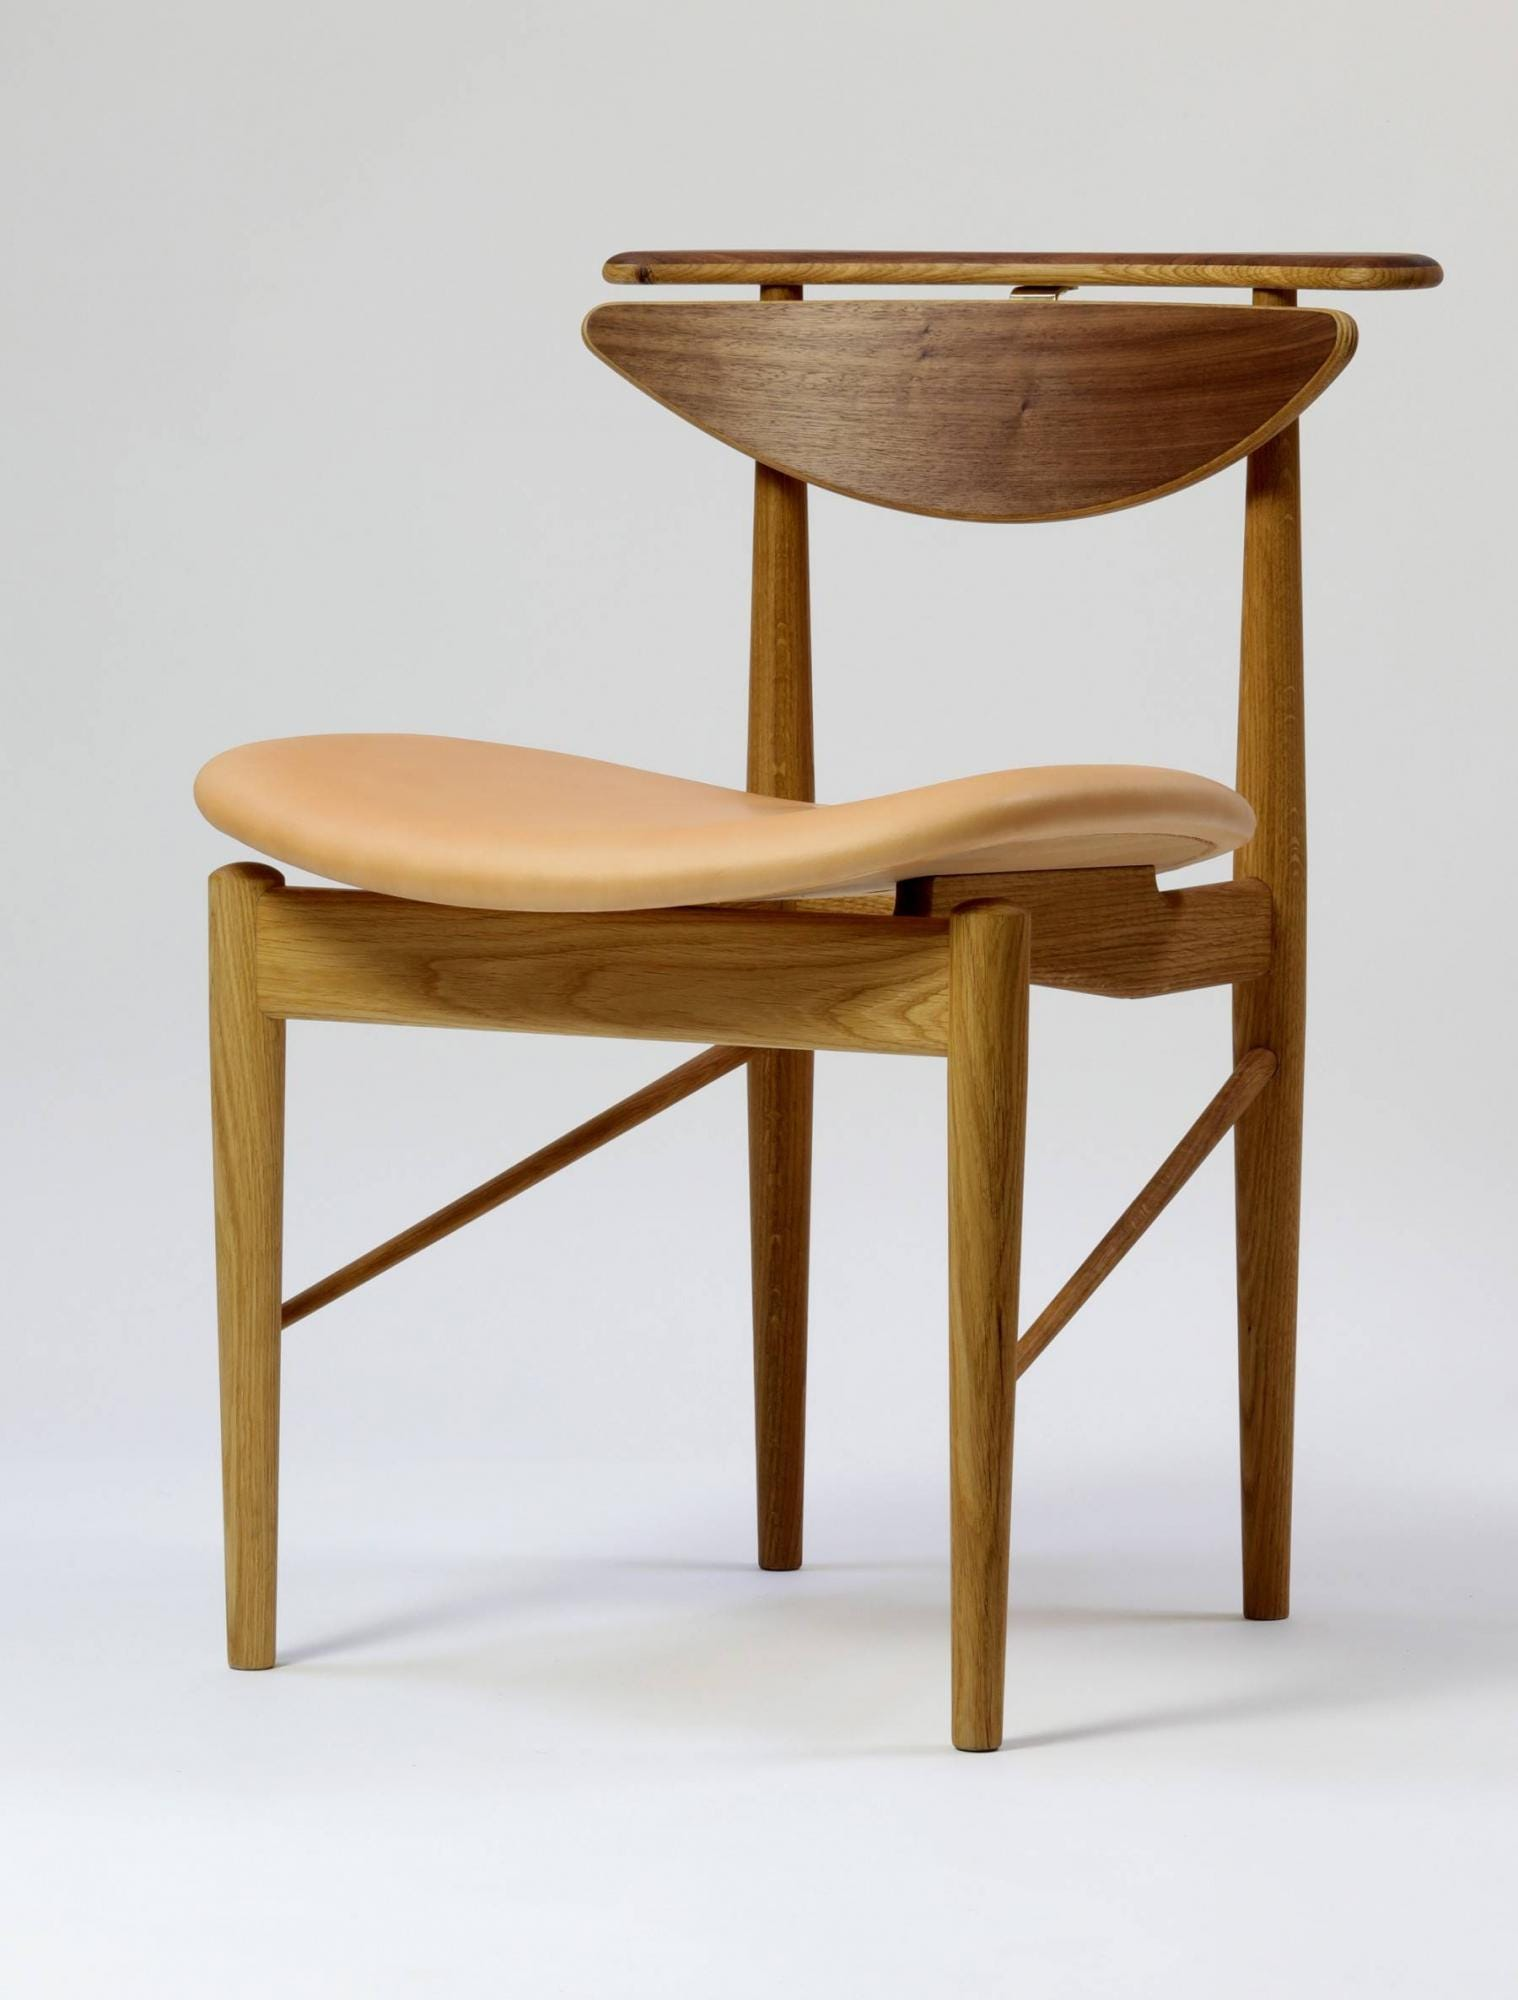 High Quality ... Finn Juhl Reading Chair. 1